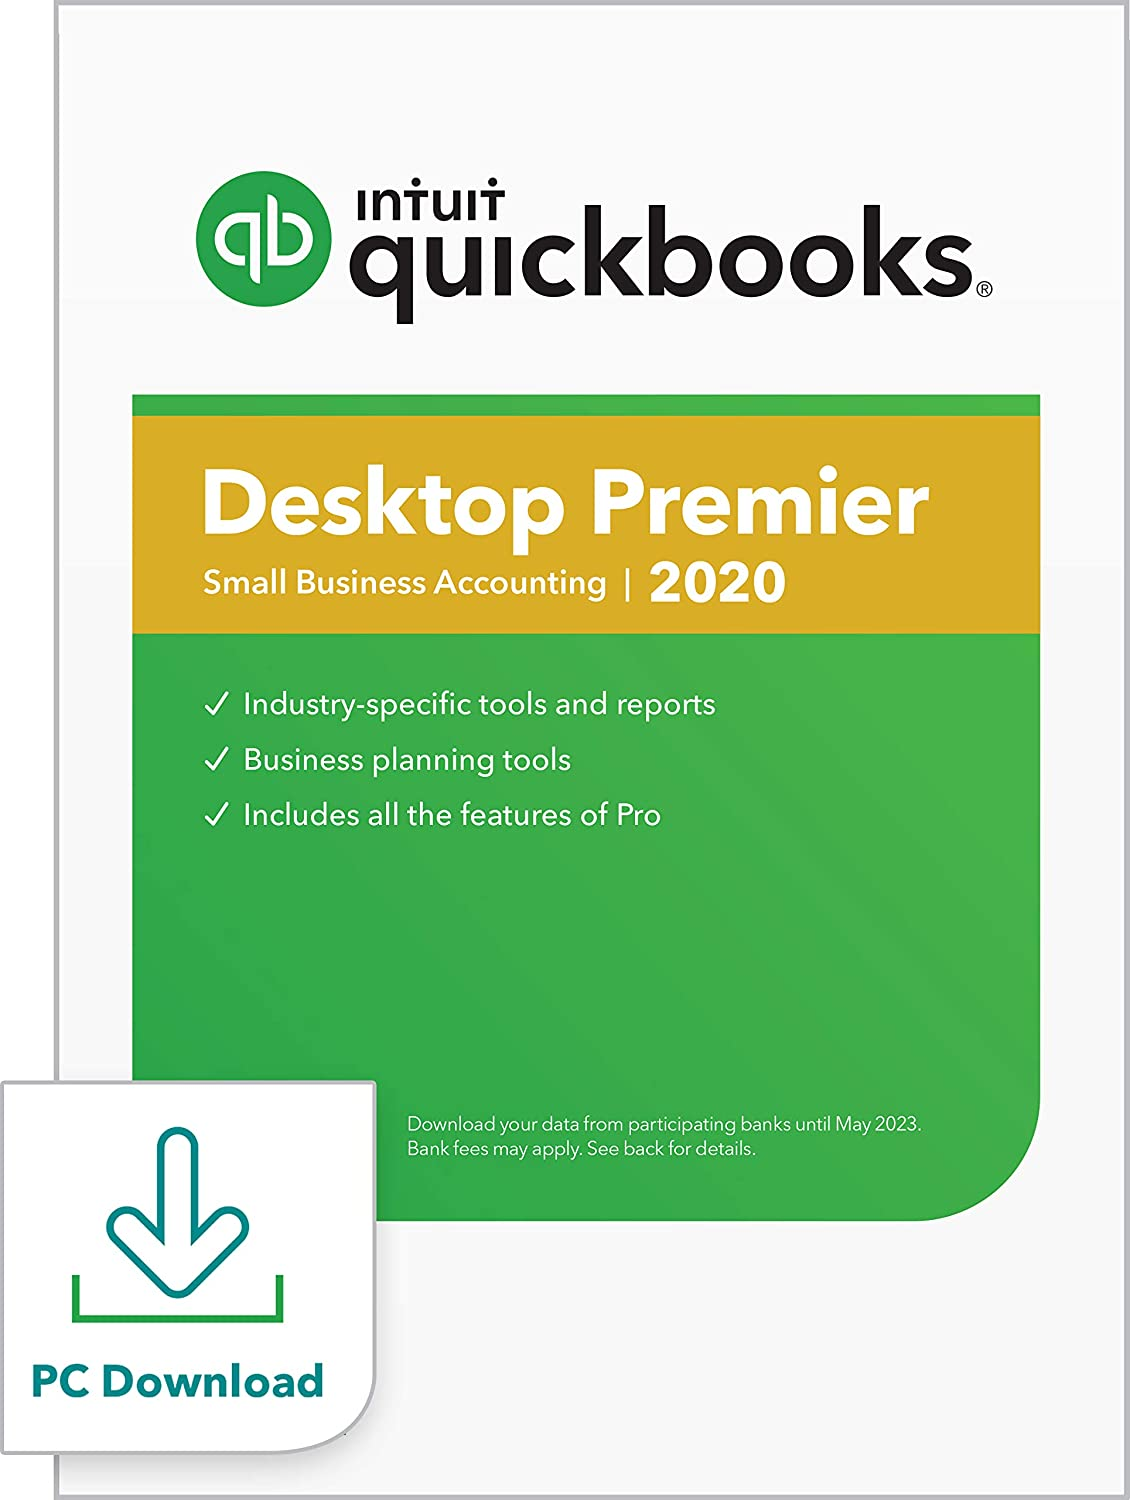 QuickBooks DesktopPremier 2020Accounting Software for Small Business withShortcut Guide [PC Download]